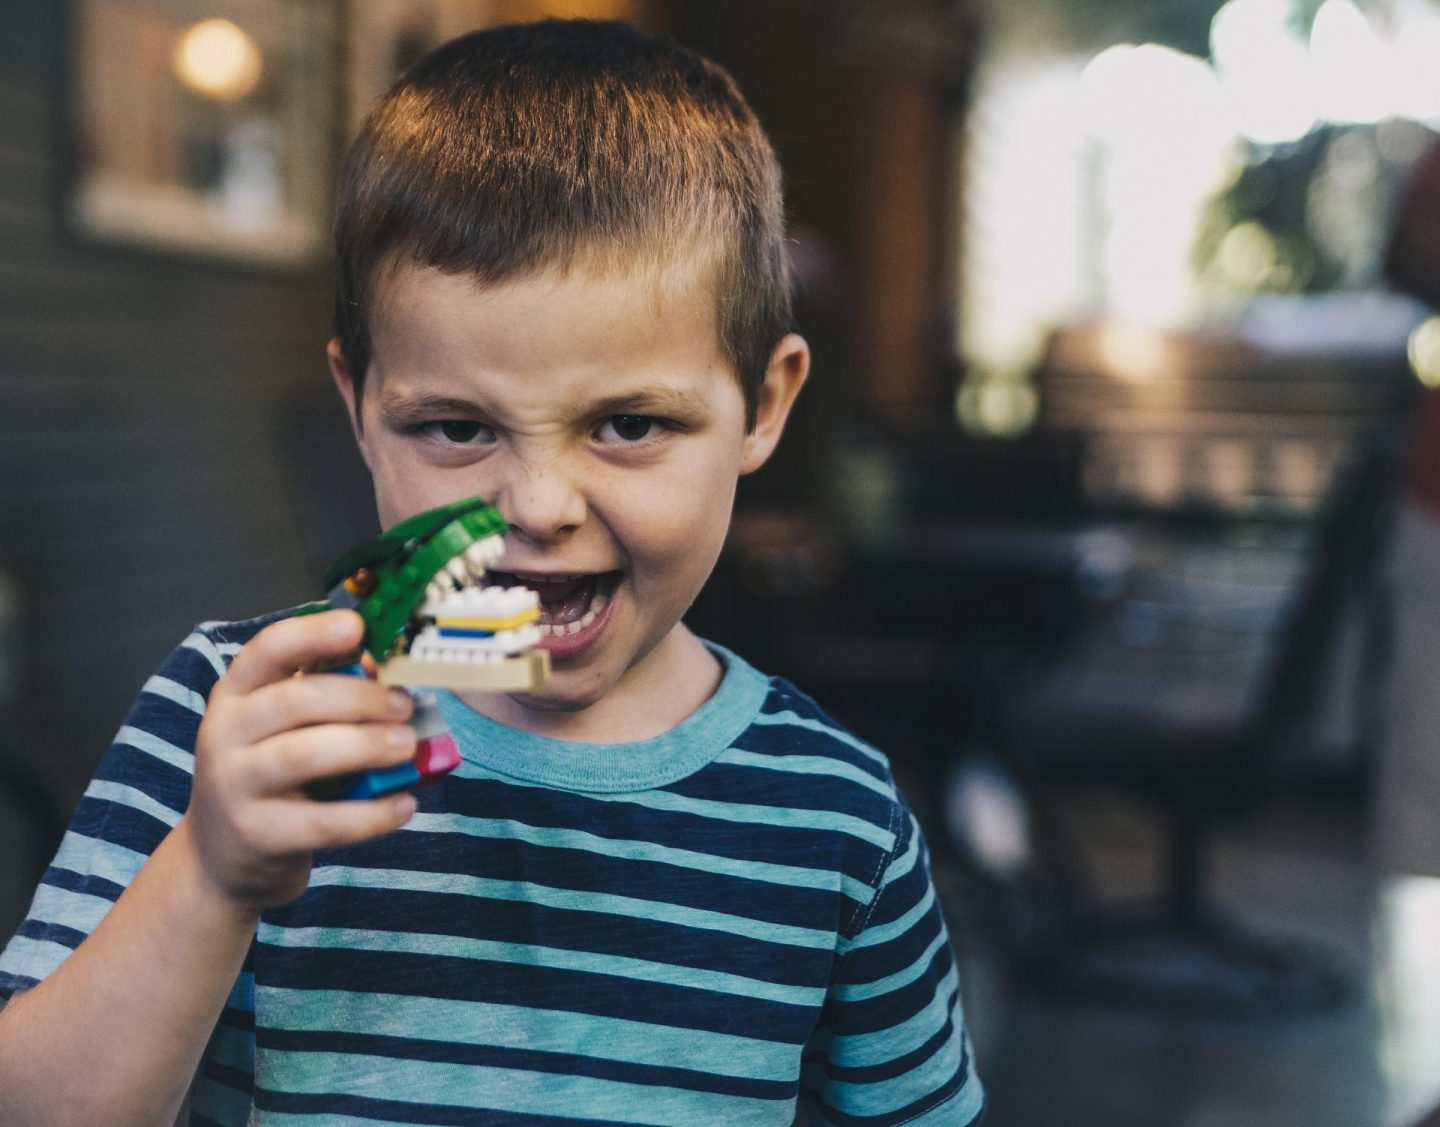 How a child's relationship with their toys matters